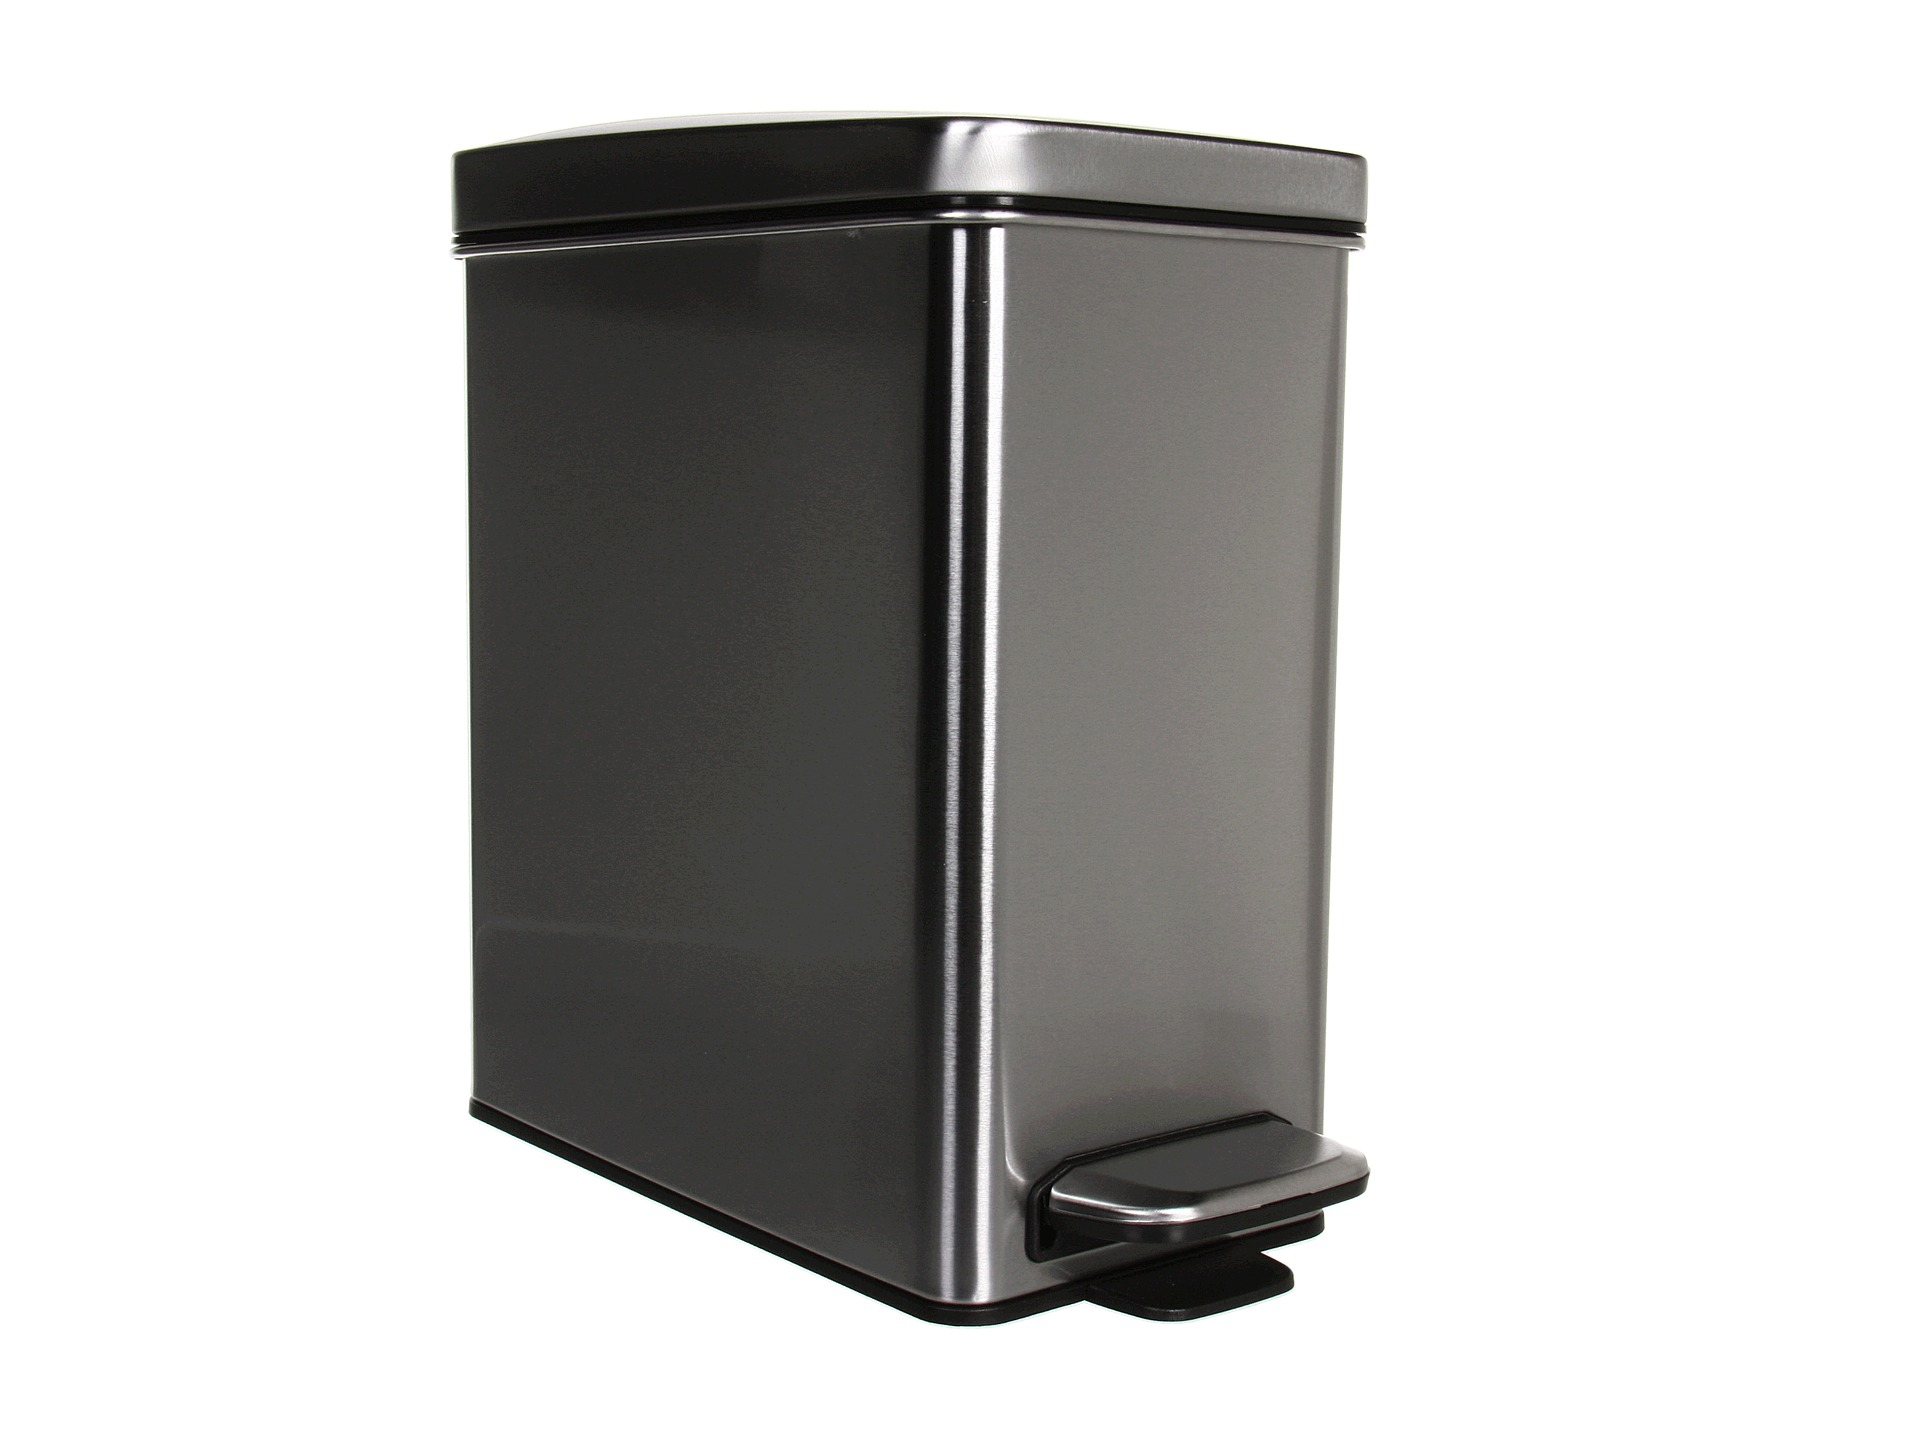 Corner Stainless Steel Trash Can Simplehuman Simplehuman Profile Step Trash Can 10 Liters 2